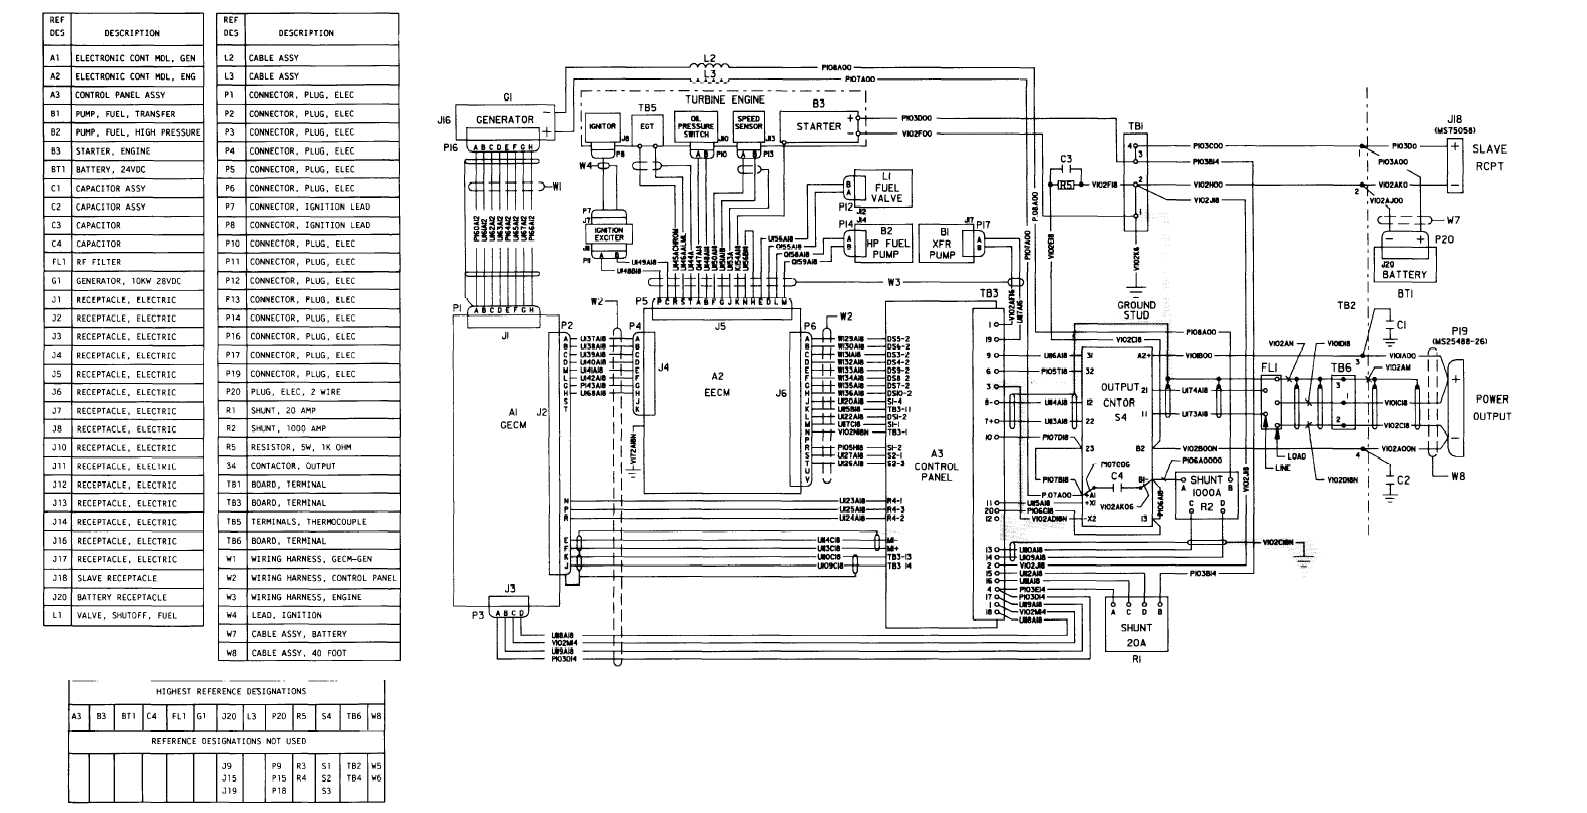 fo 3 generator set wiring diagram rh gasturbinegenerators tpub com wiring diagram for a portable generator wiring diagram for a portable generator